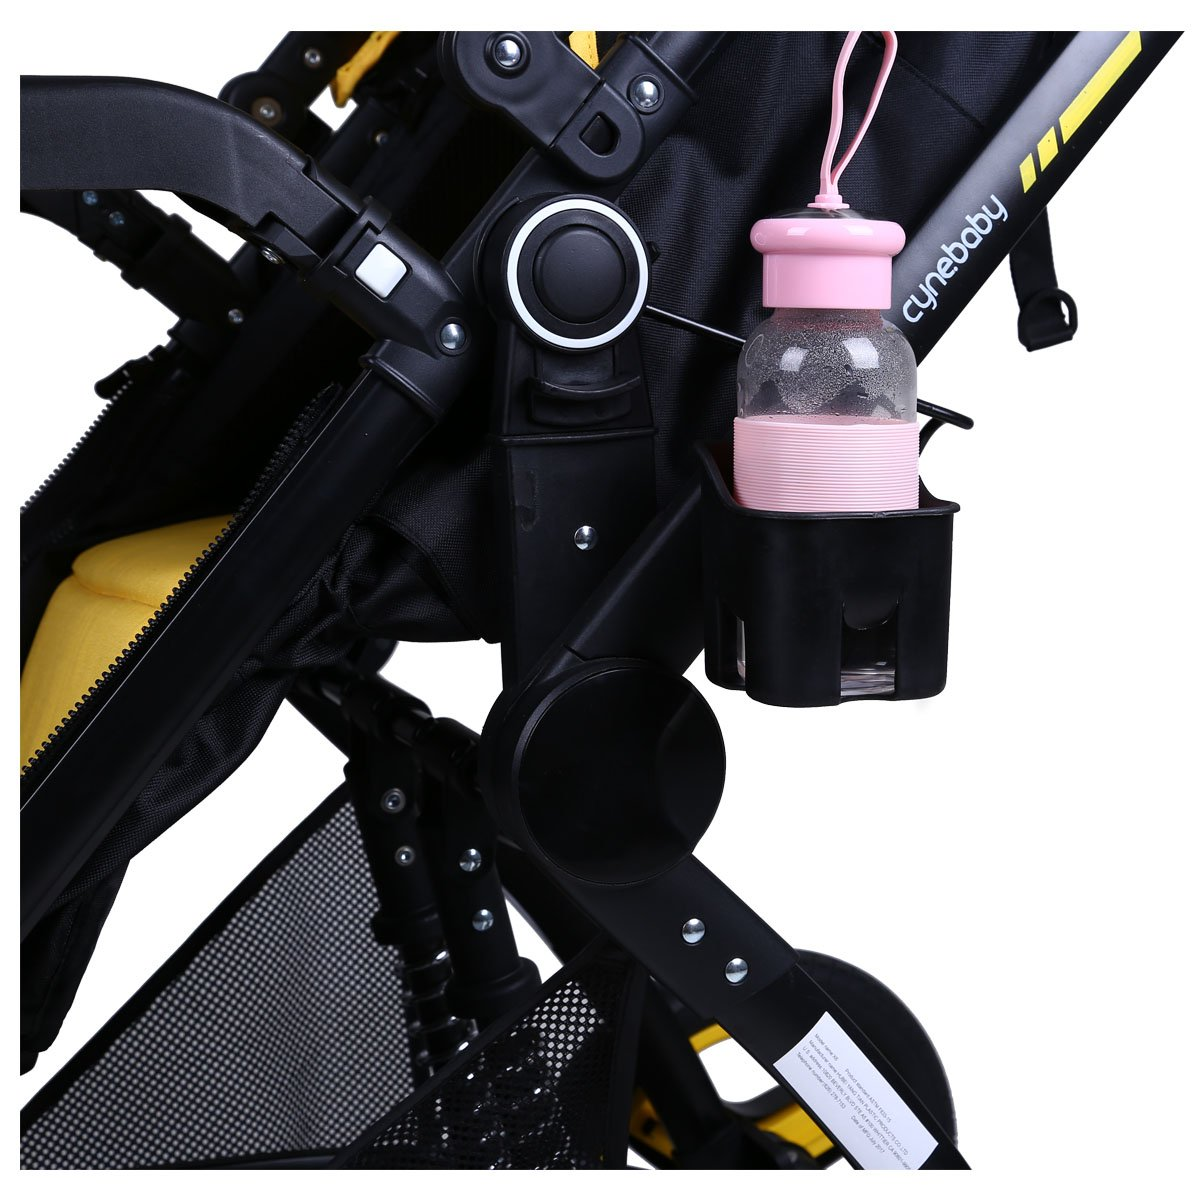 Cup Holder for Cynebaby Stroller X6 by HAIXIAO (Image #3)